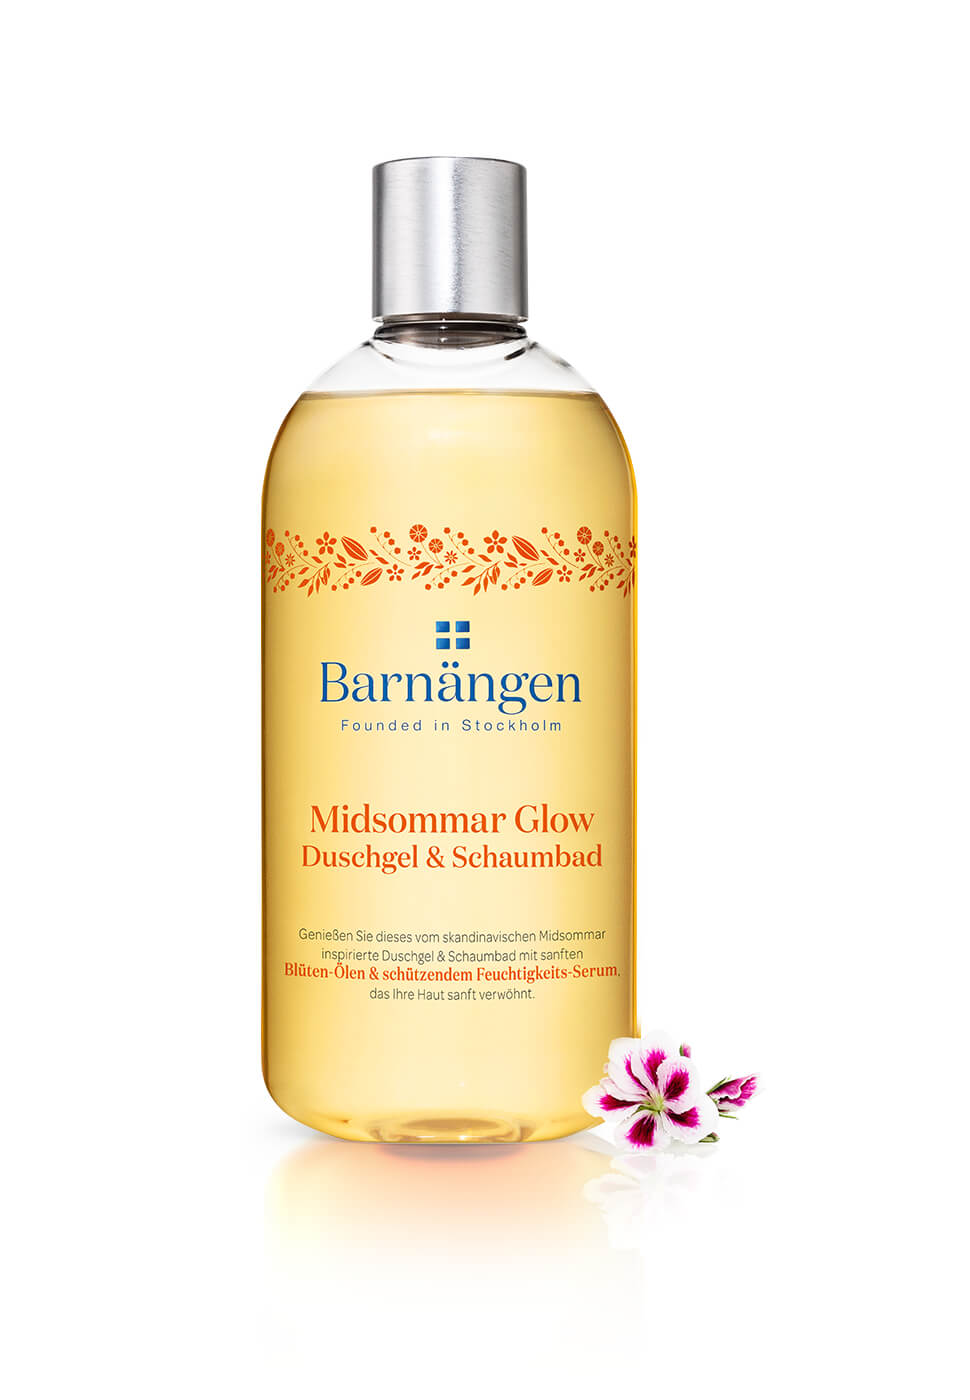 barnangen_de_nordic_rituals_midsommar_glow_shower_and_bath_gel_970x1400